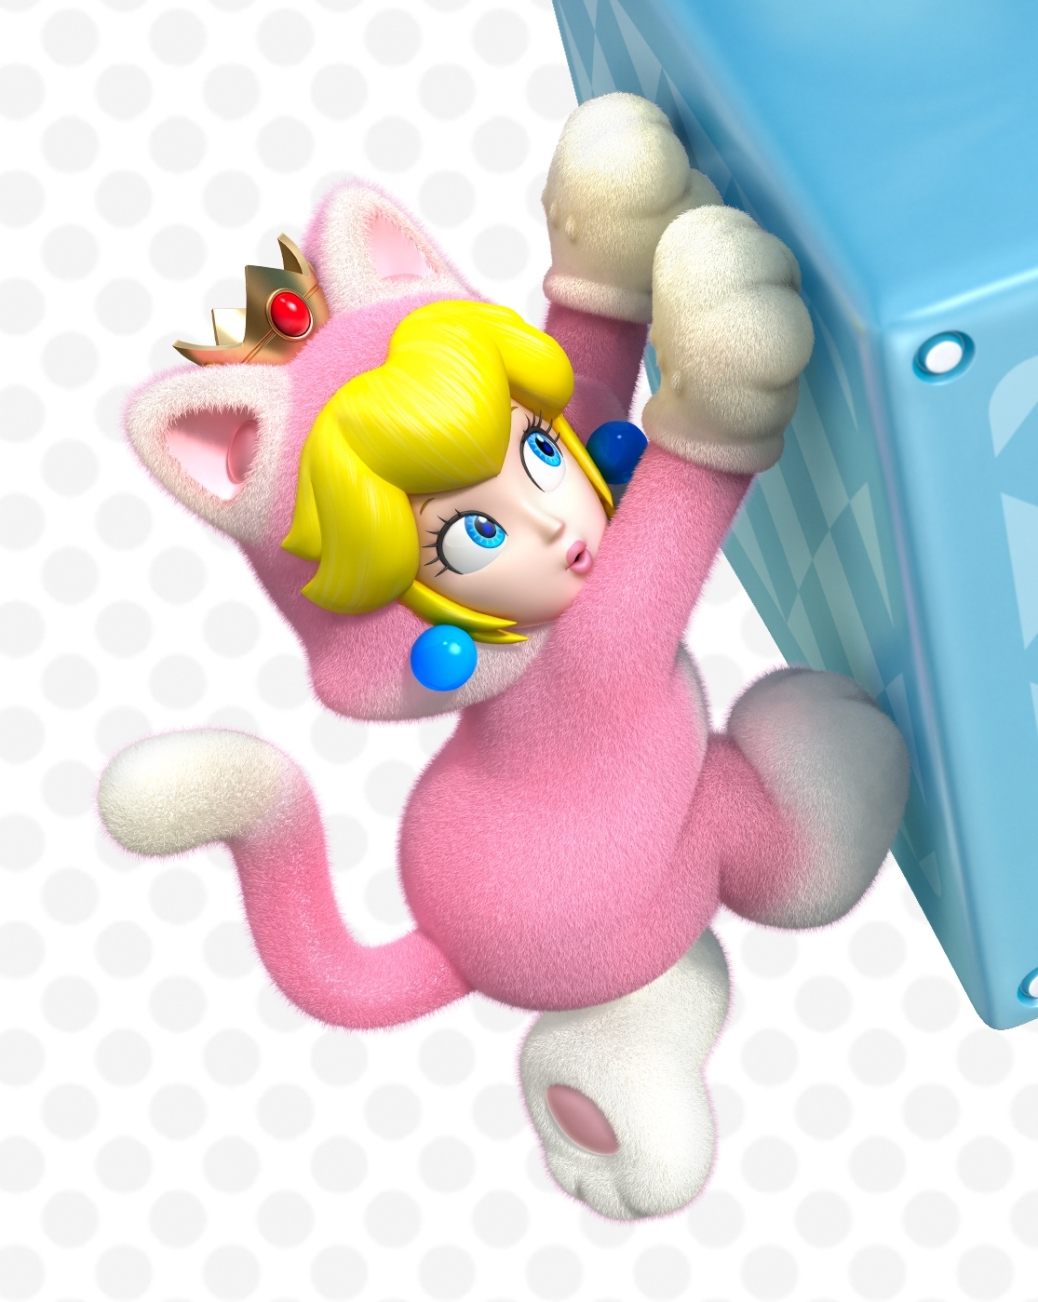 cat_peach_super_mario_3d_world